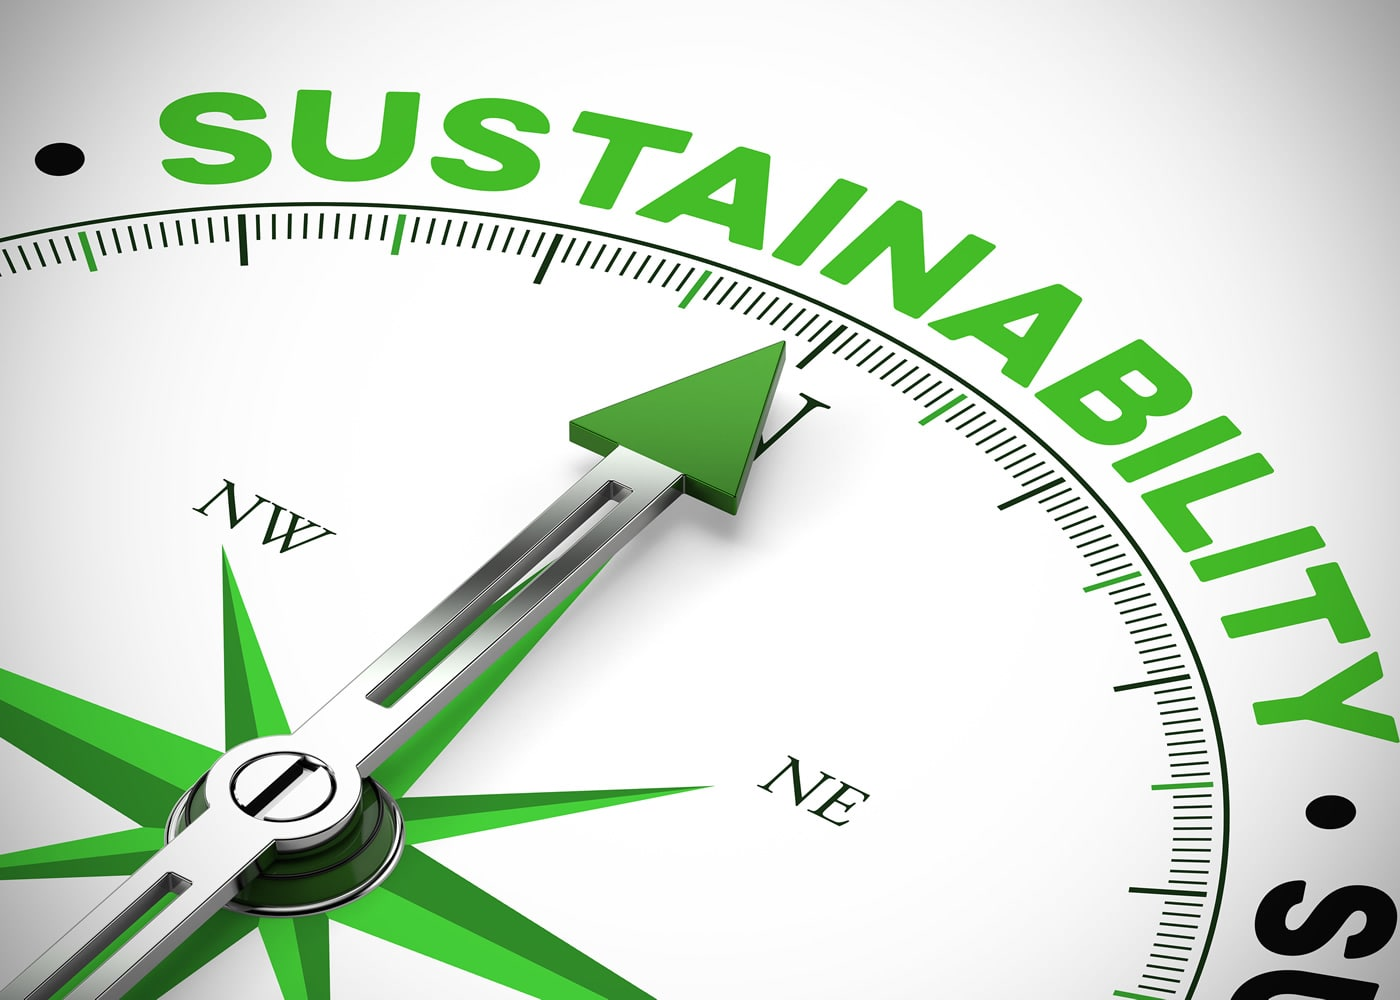 naem-webinar-2020-sustainability-compass-arrow-green-700x500-min